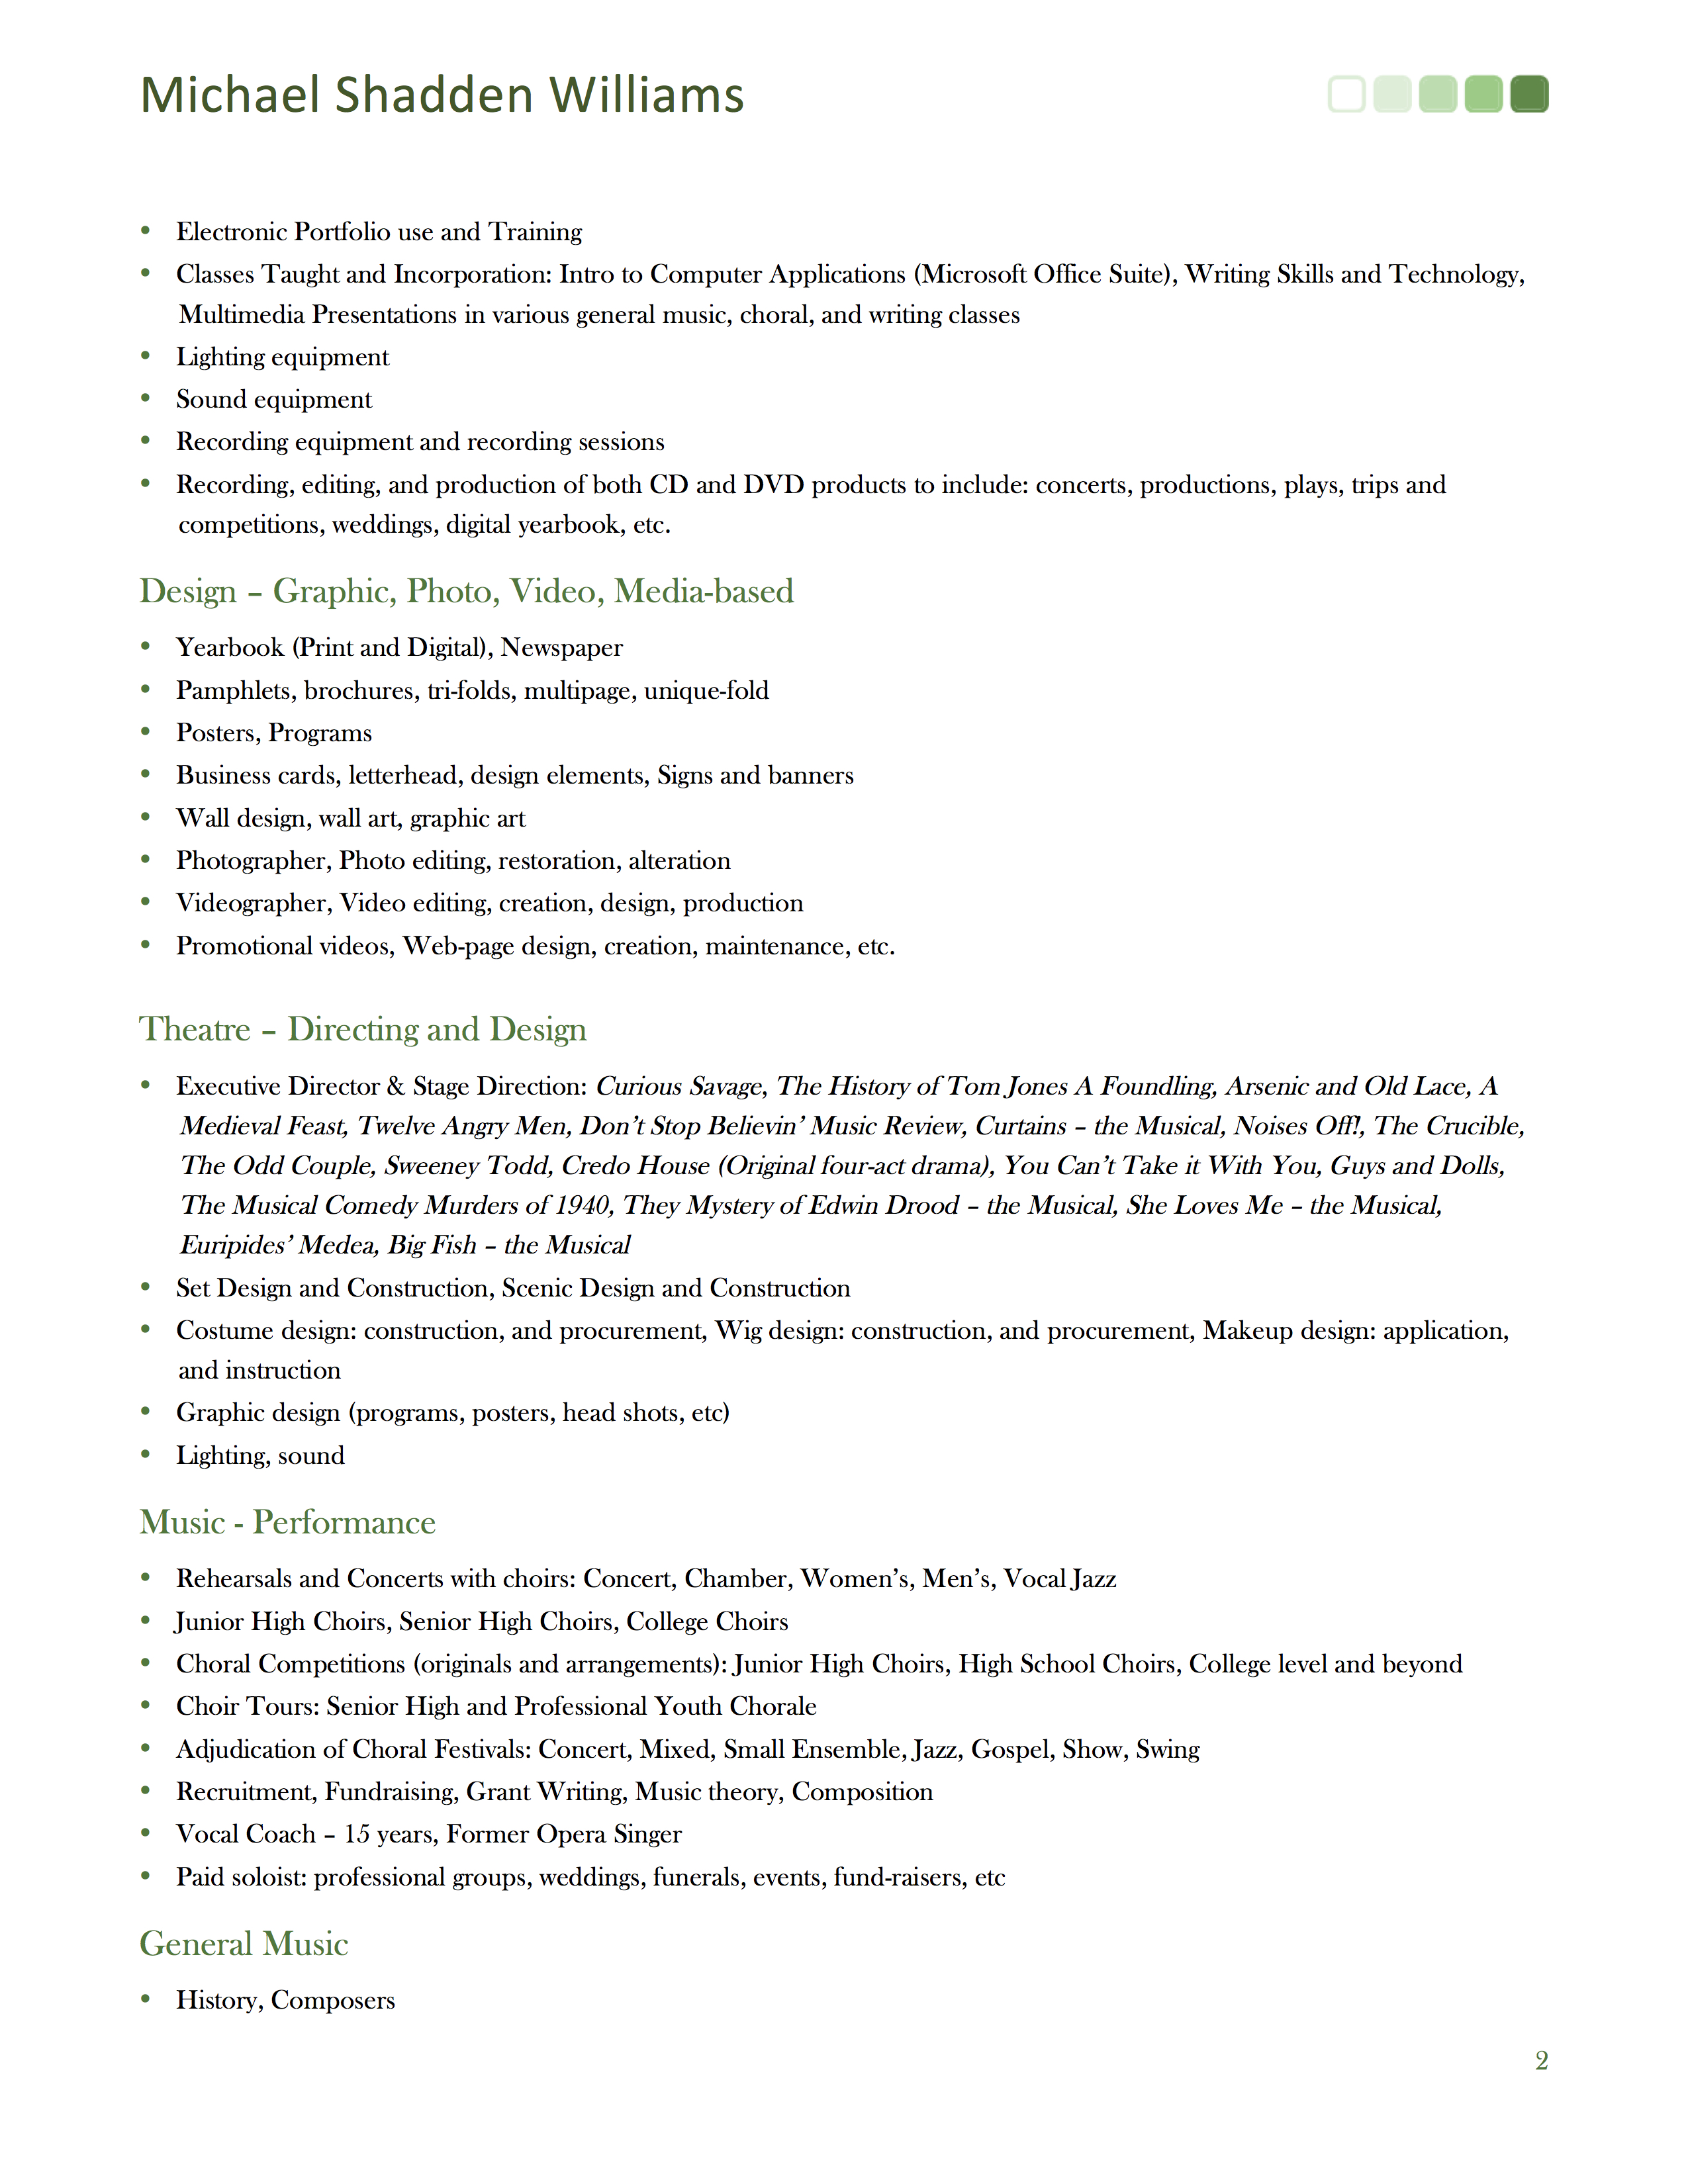 Michael S. Williams – Resume -